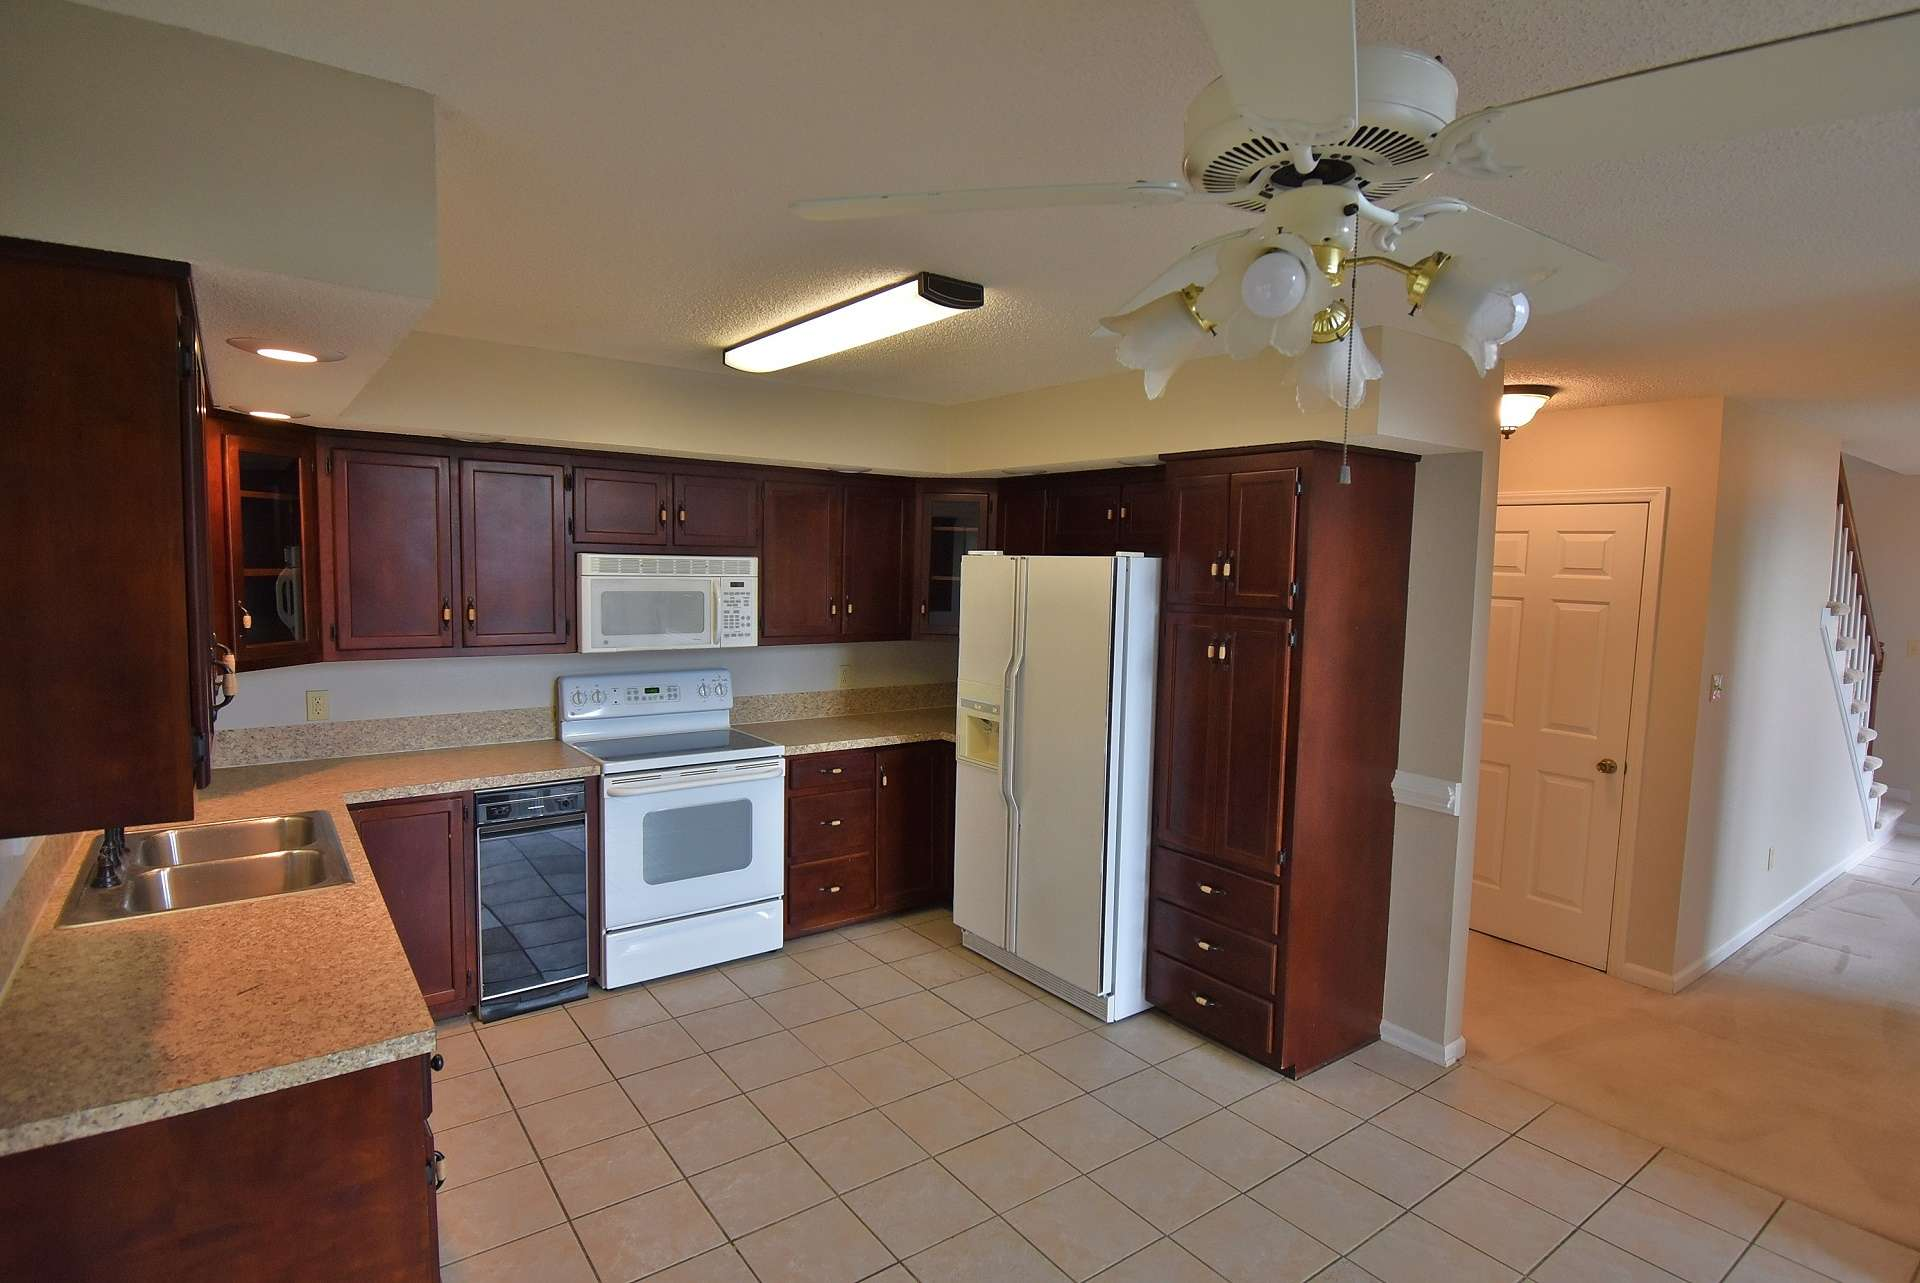 This spacious kitchen features ceramic tiled floor and offers plenty of work and storage space.